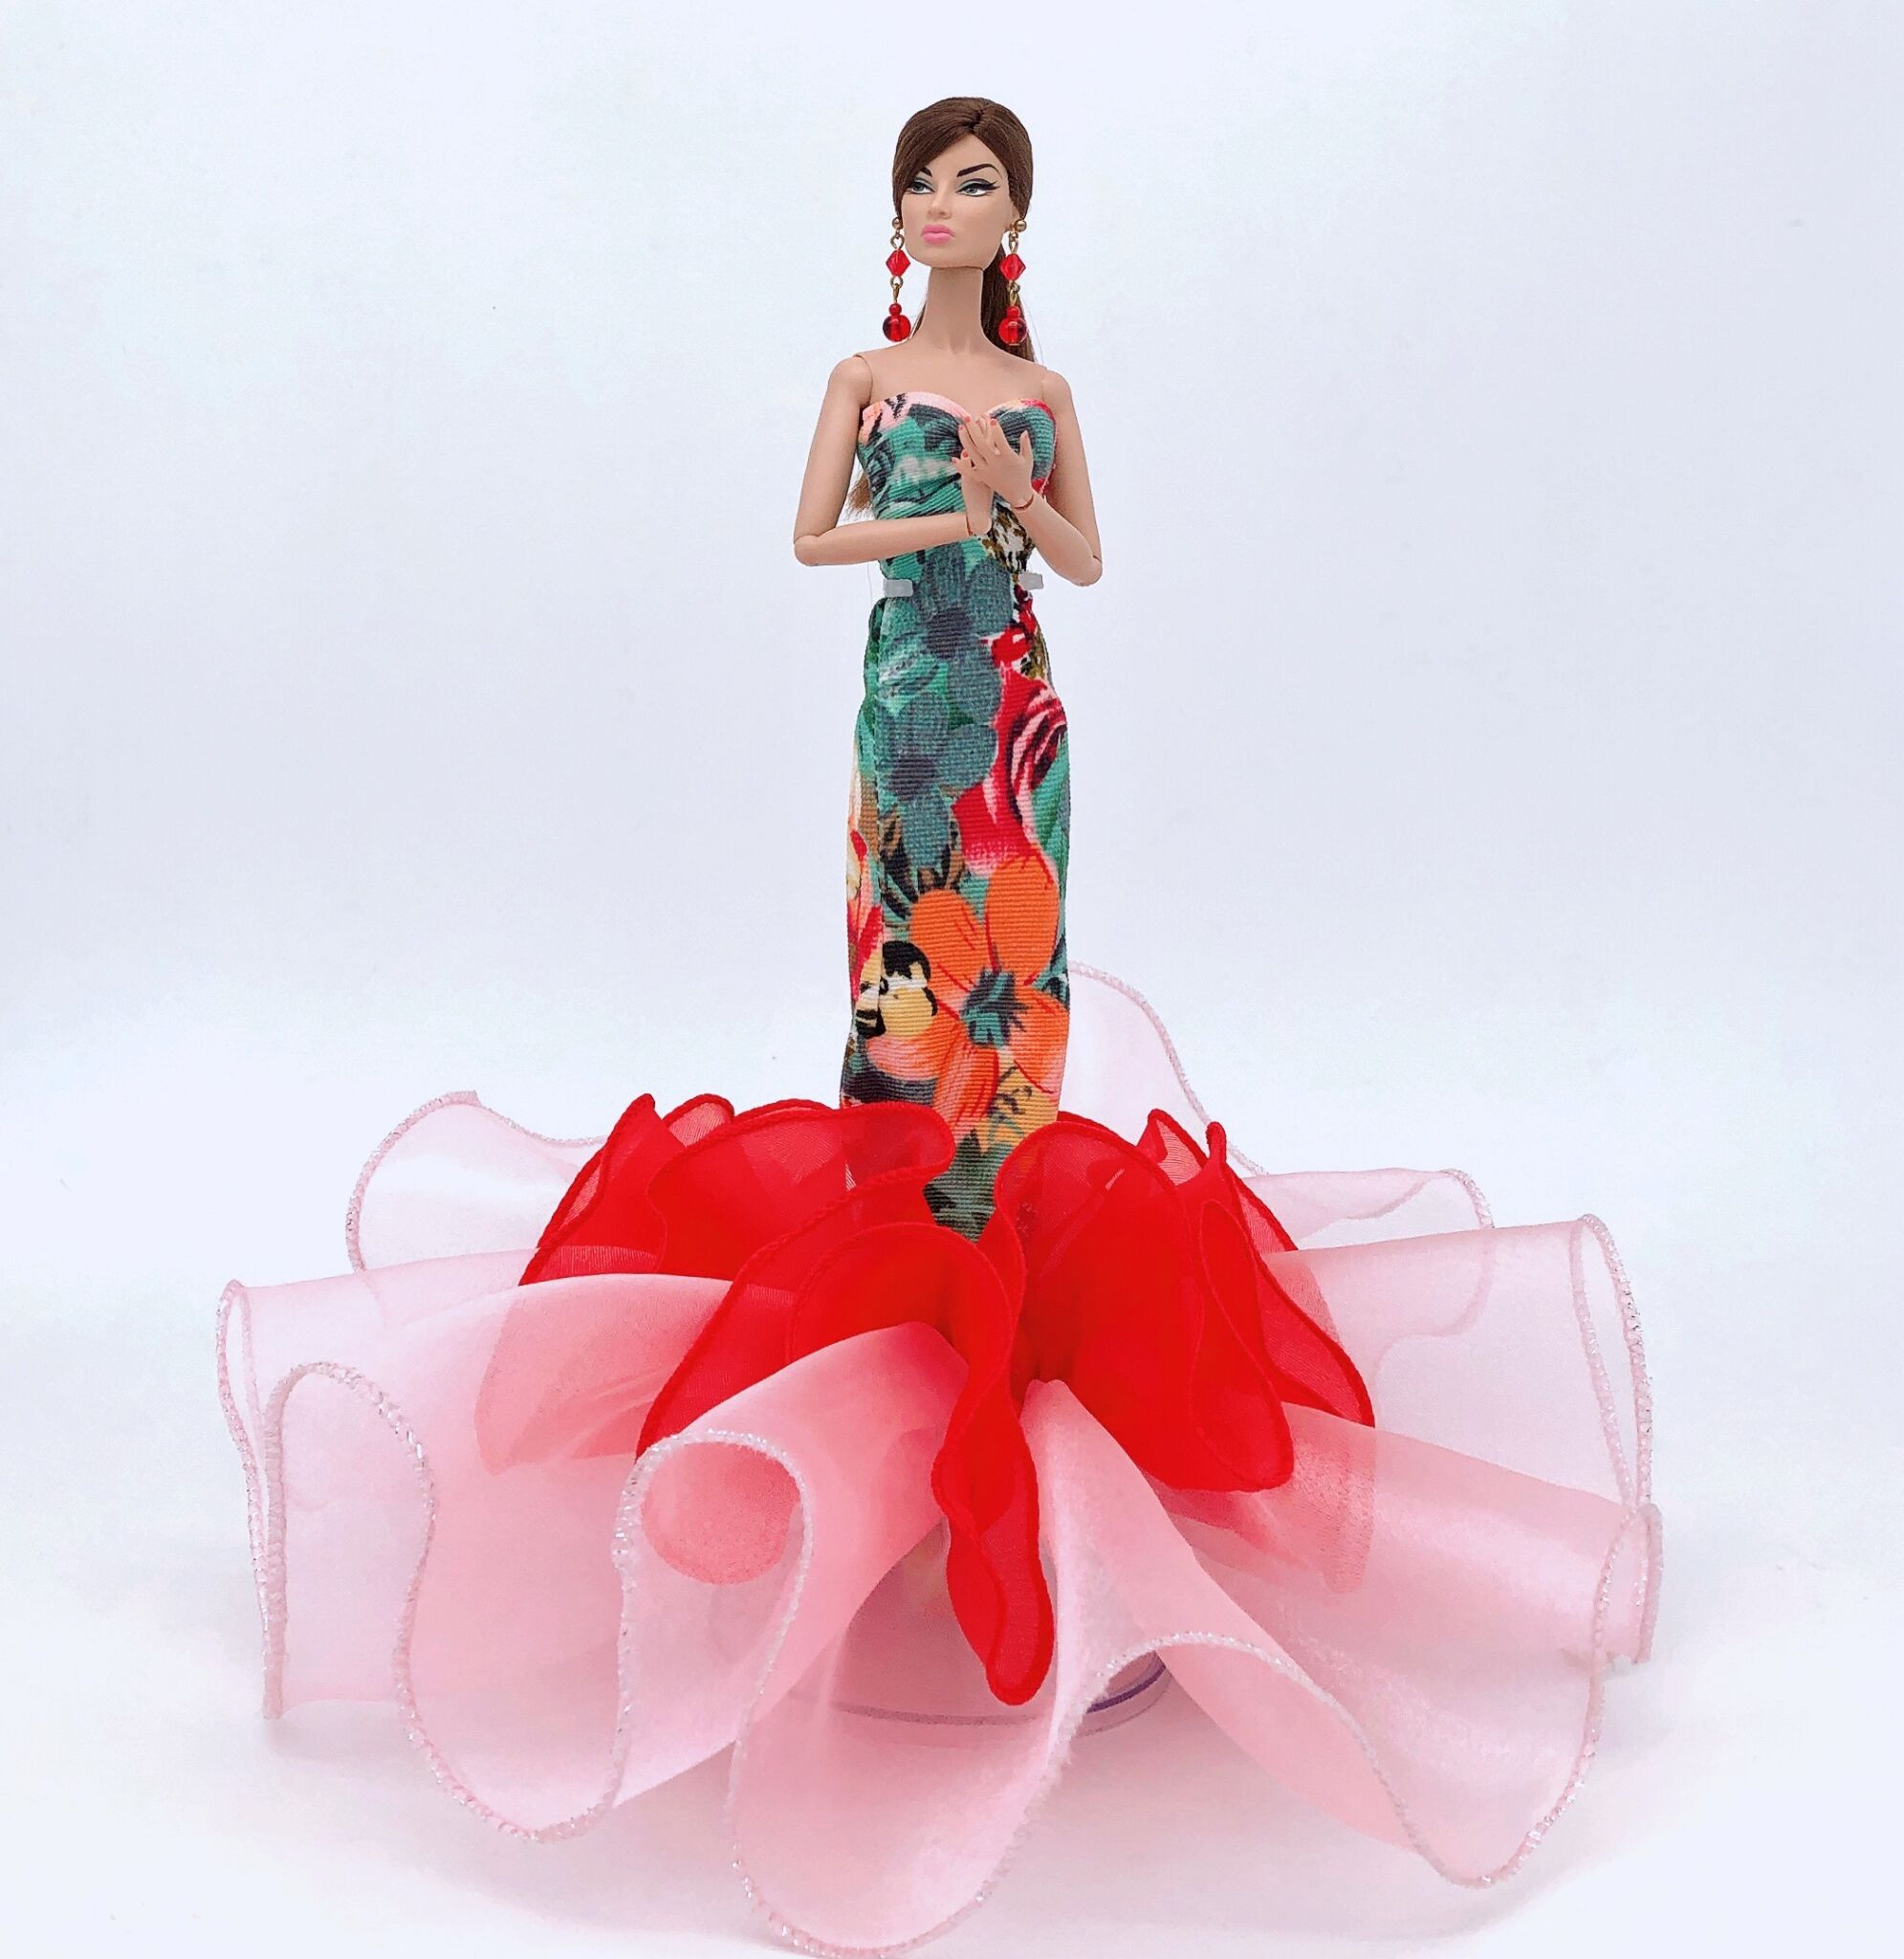 Fashion Original Handmake Clothes For Barbie Doll 1/6 Bjd Princess Dress Party Outfit Wedding Dress Costume Toys Birthday Gift